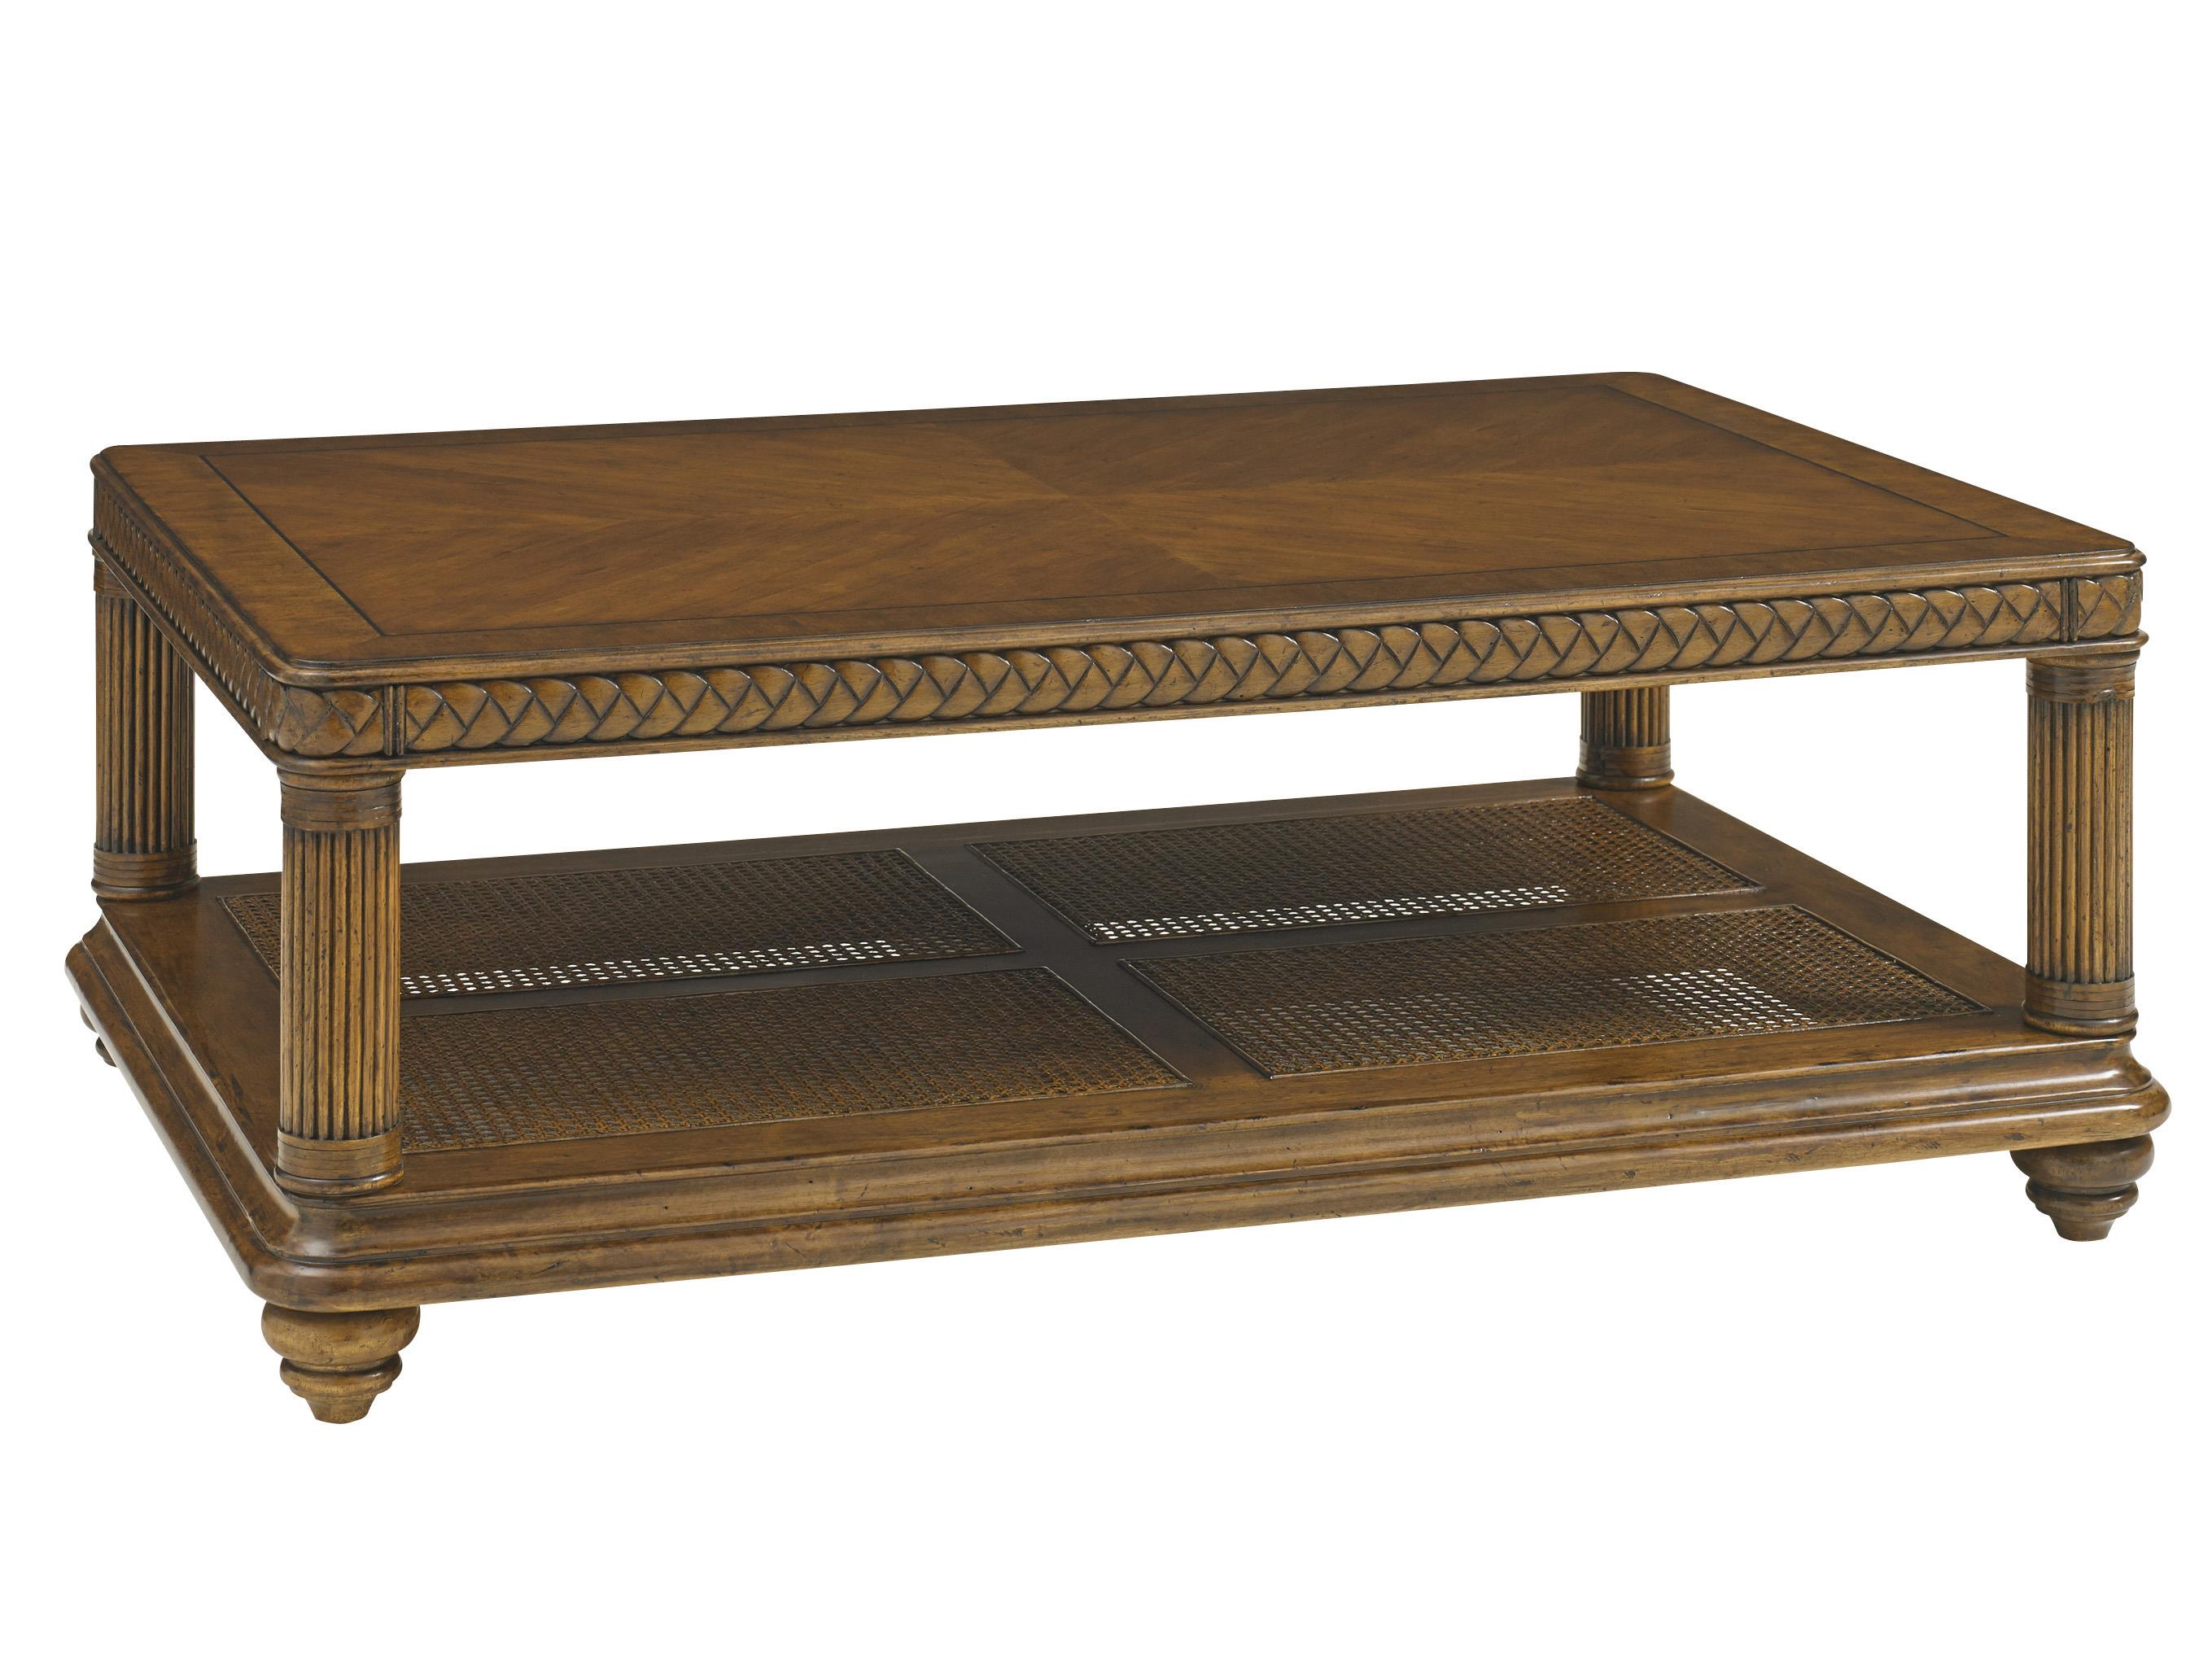 Tommy Bahama Home Bali Hai Vinyard Point Rectangular Cocktail Table - Item Number: 593-945